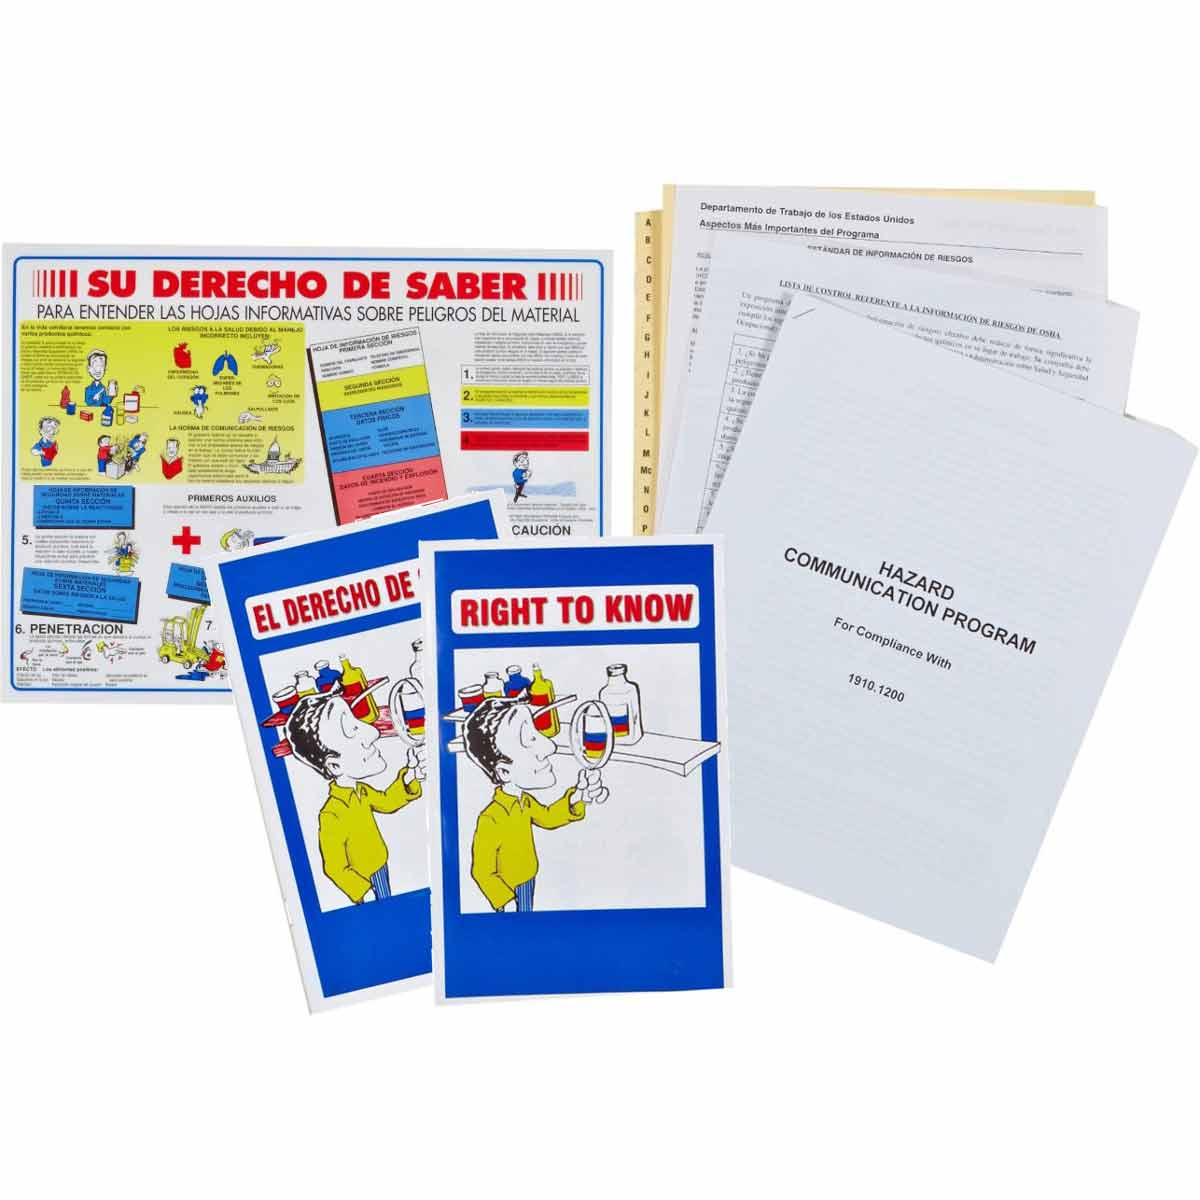 MSDS Training Binder Insert